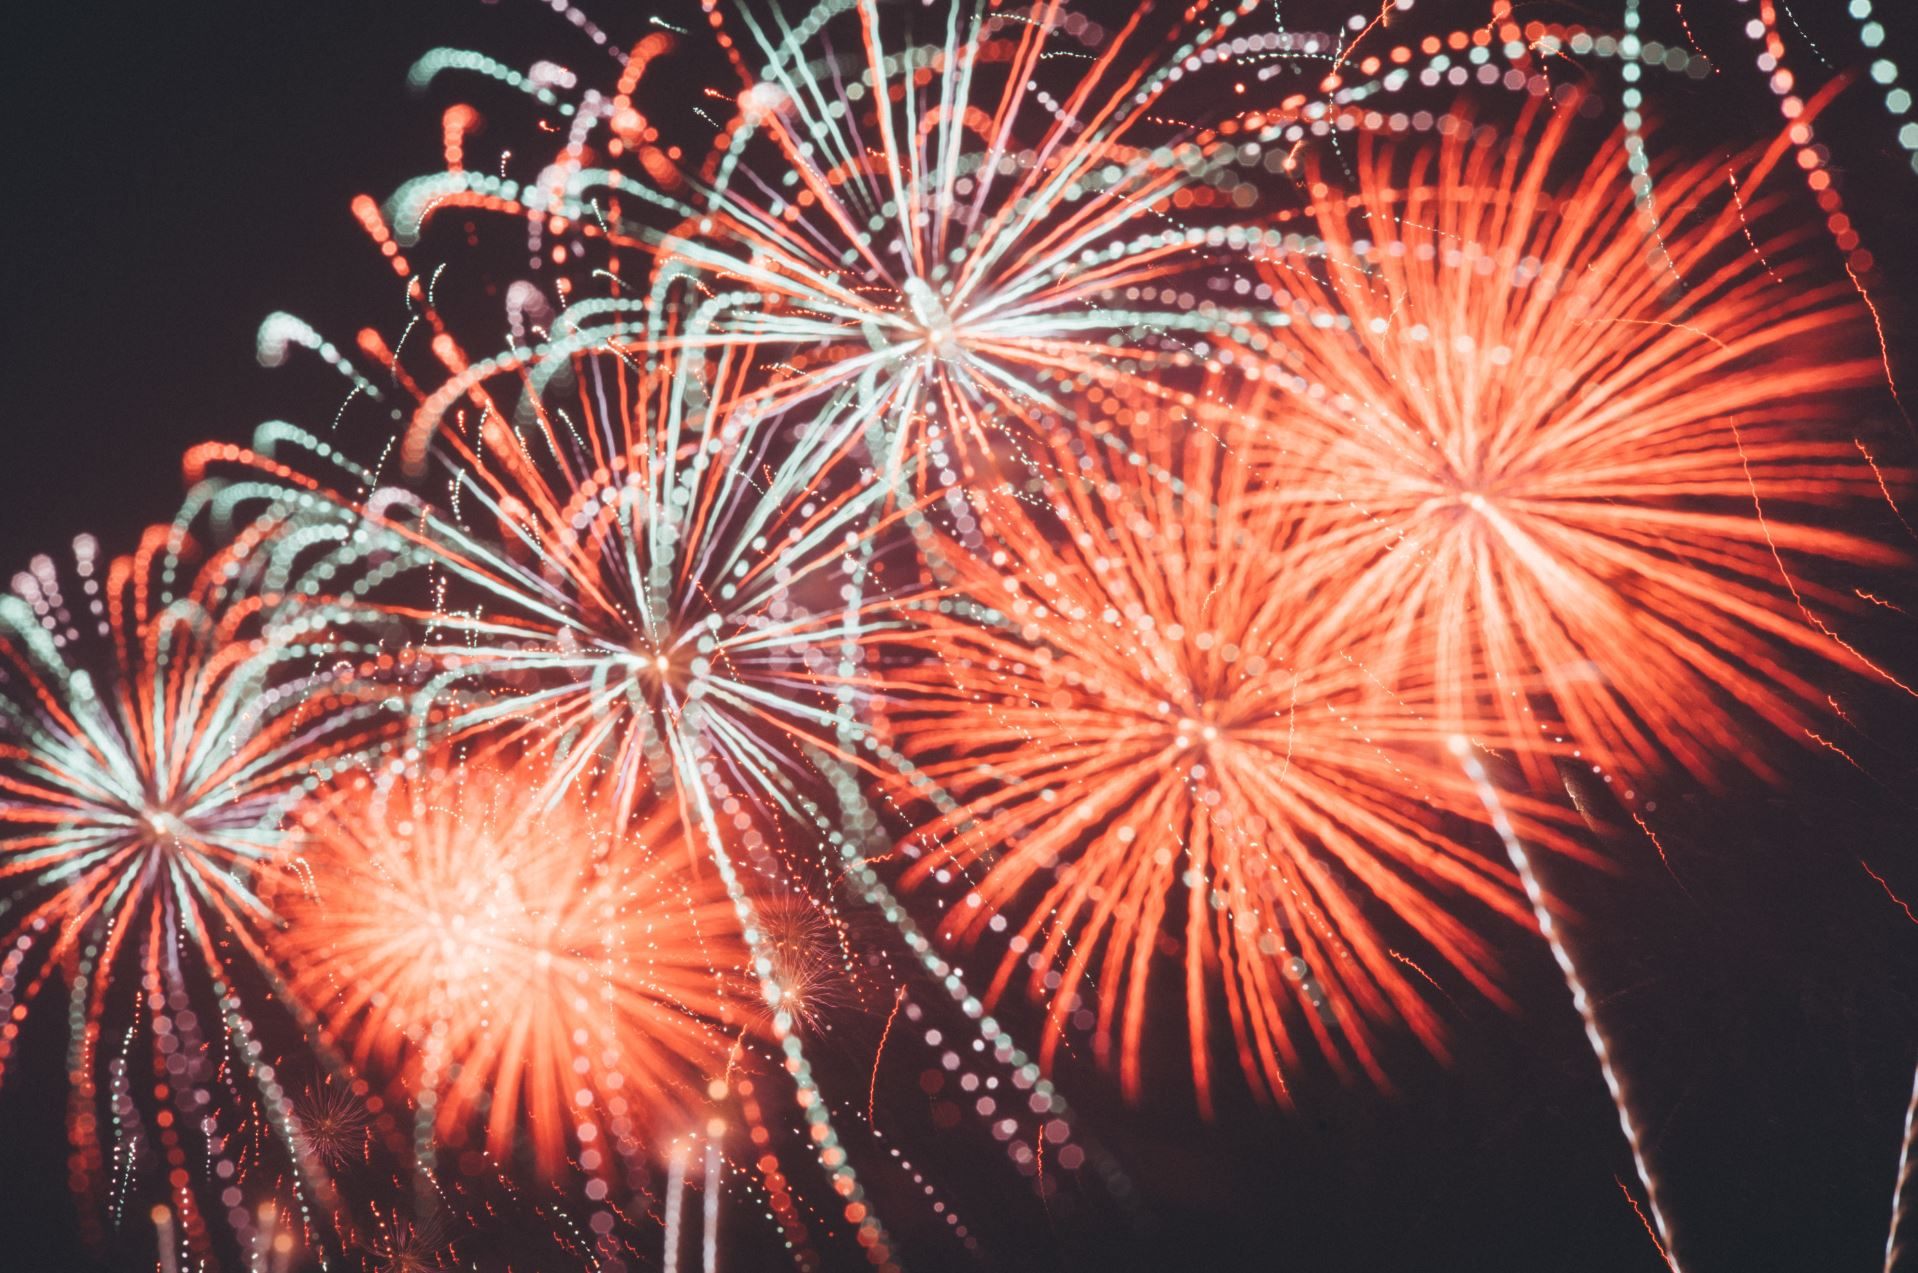 Fireworks are a class of explosive pyrotechnic devices that commonly come in around seven colors.- Image Credit:  Joseph Chan via Unsplash